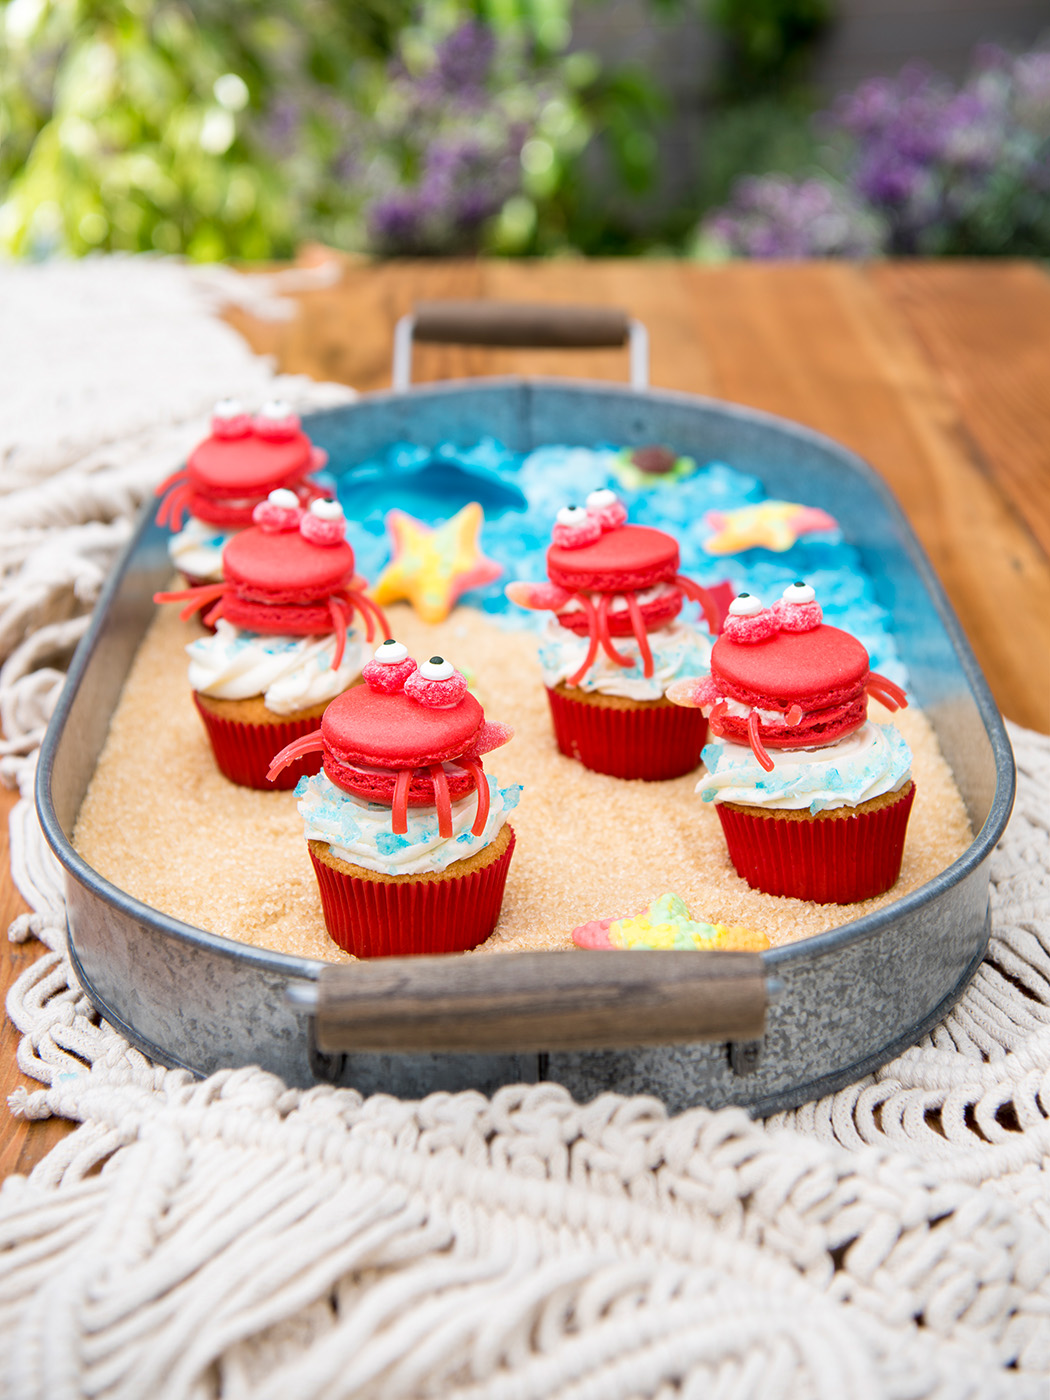 Deborah_Farnault_Food_Network_How-To-Win-Summer-Crab-Cupcakes-3x4-0597.jpg